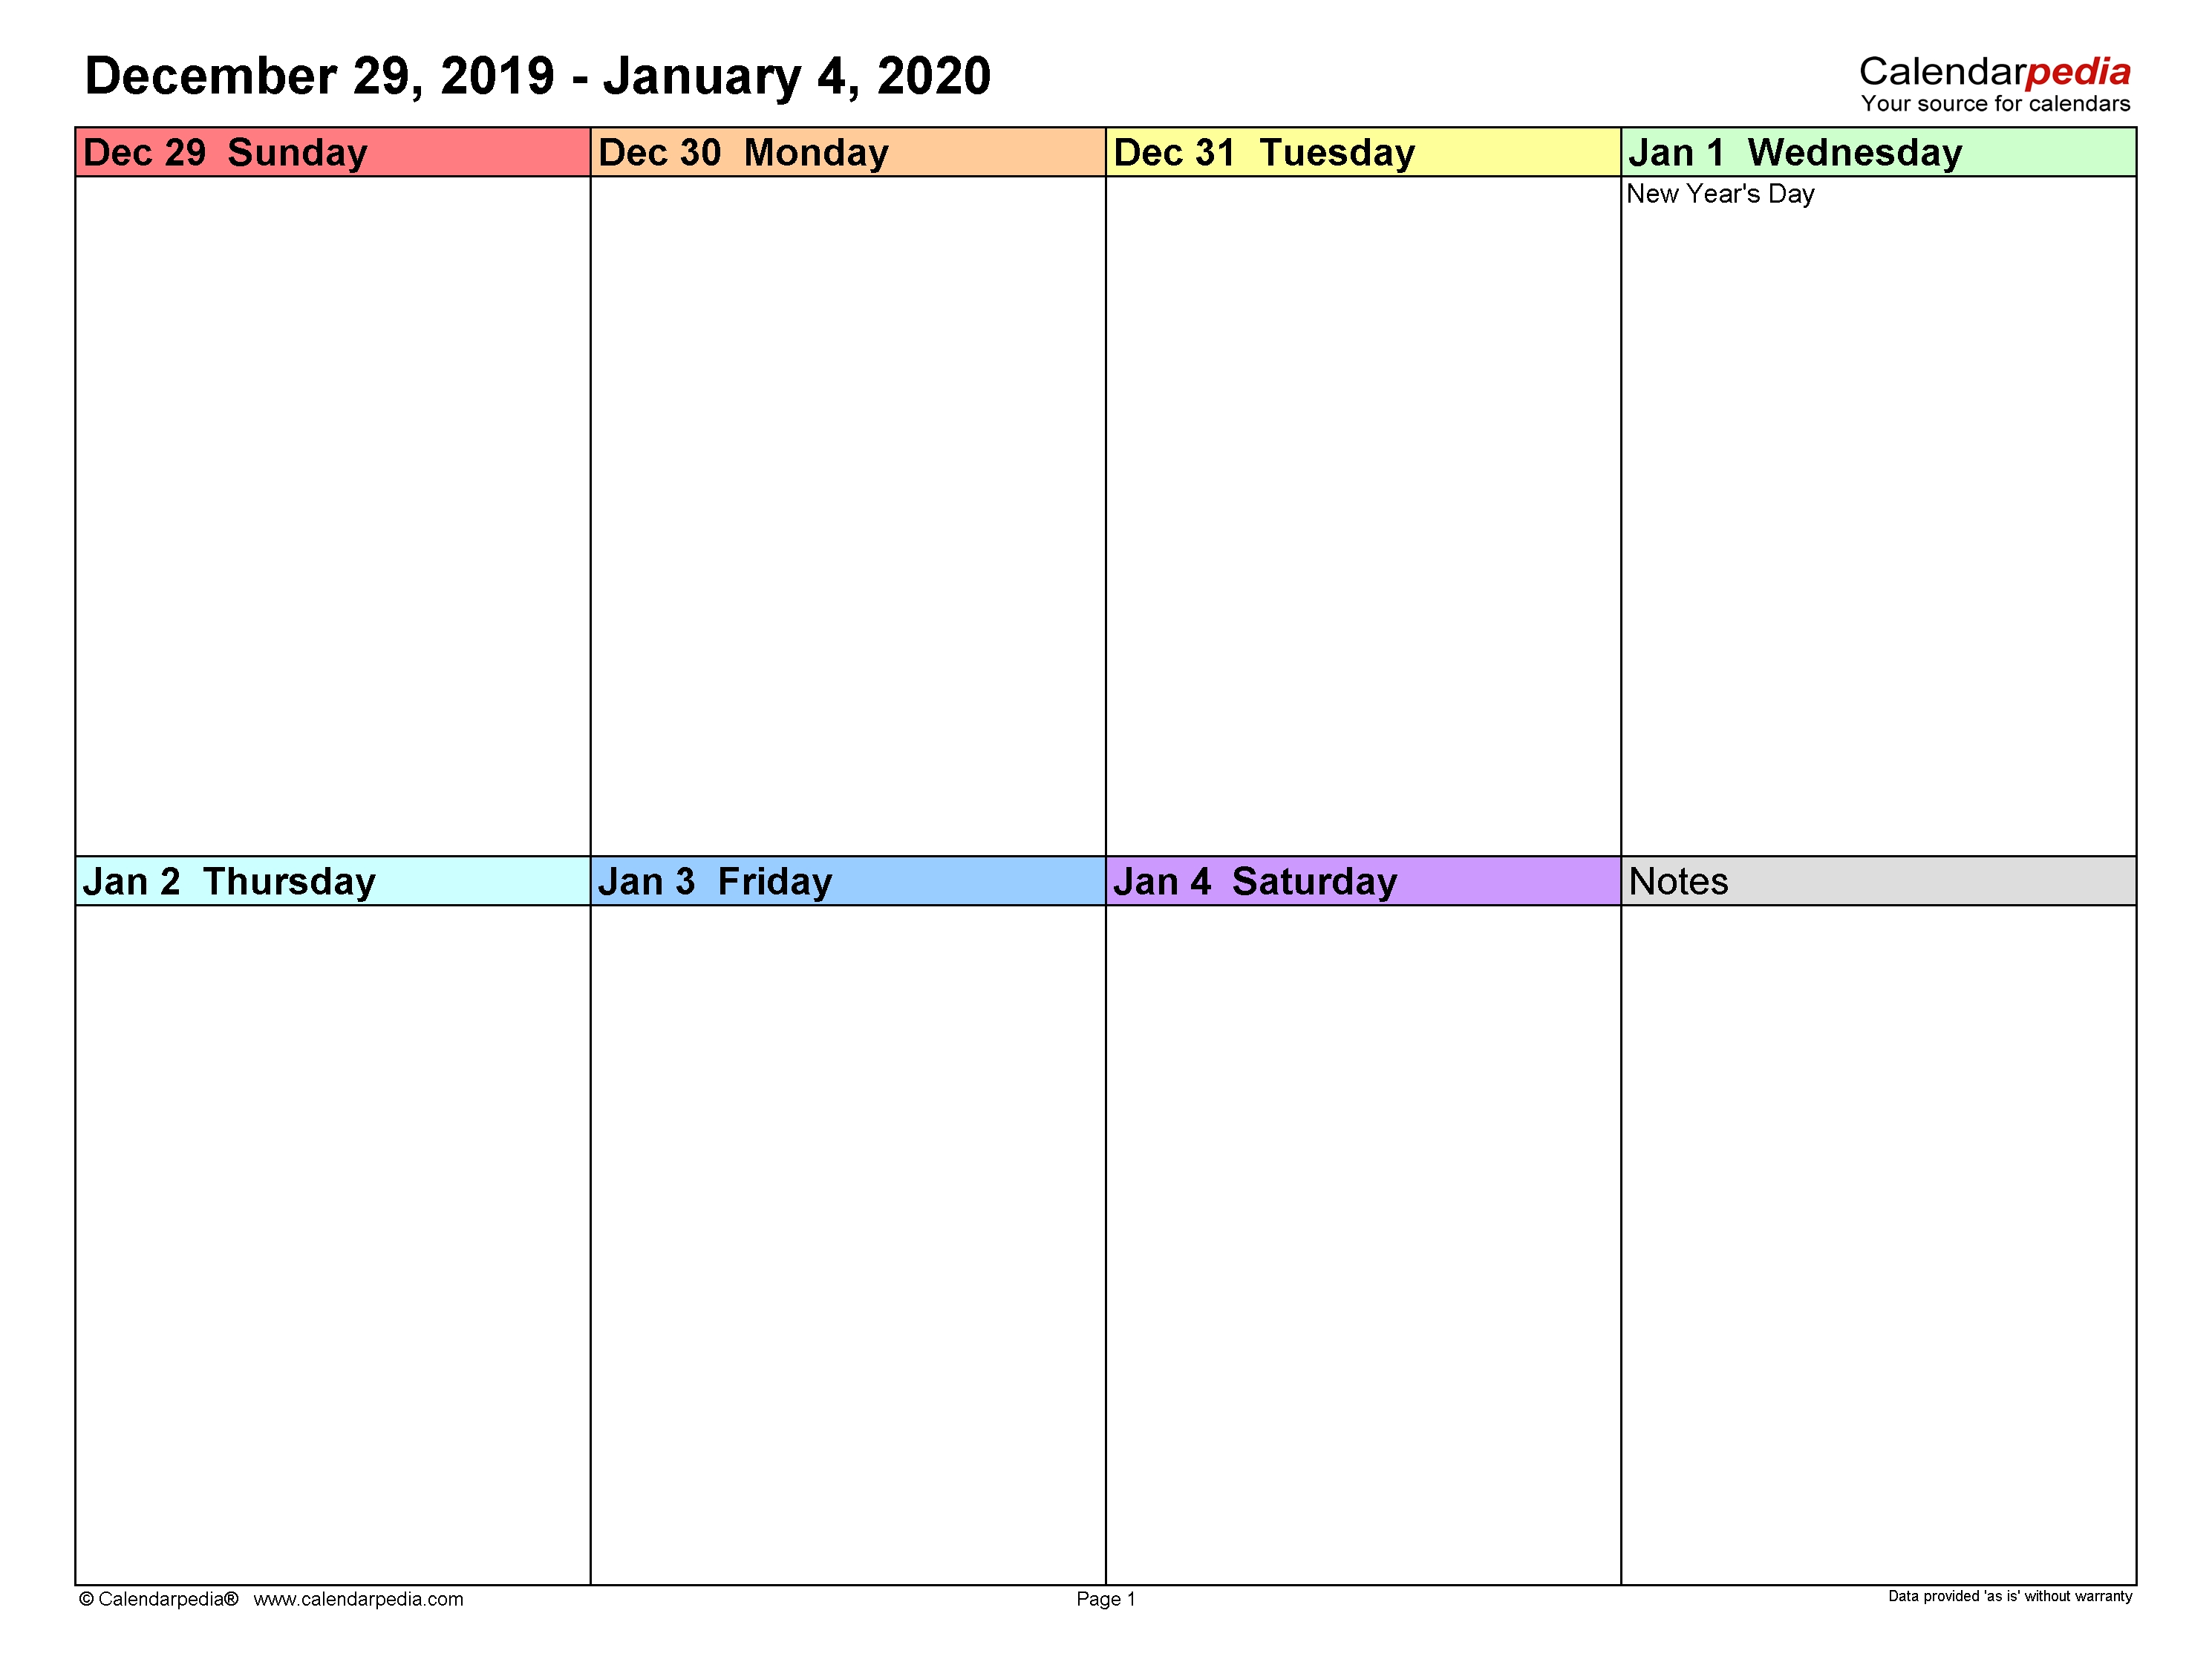 Weekly Calendars 2020 For Word - 12 Free Printable Templates Calendar Template 4 Weeks